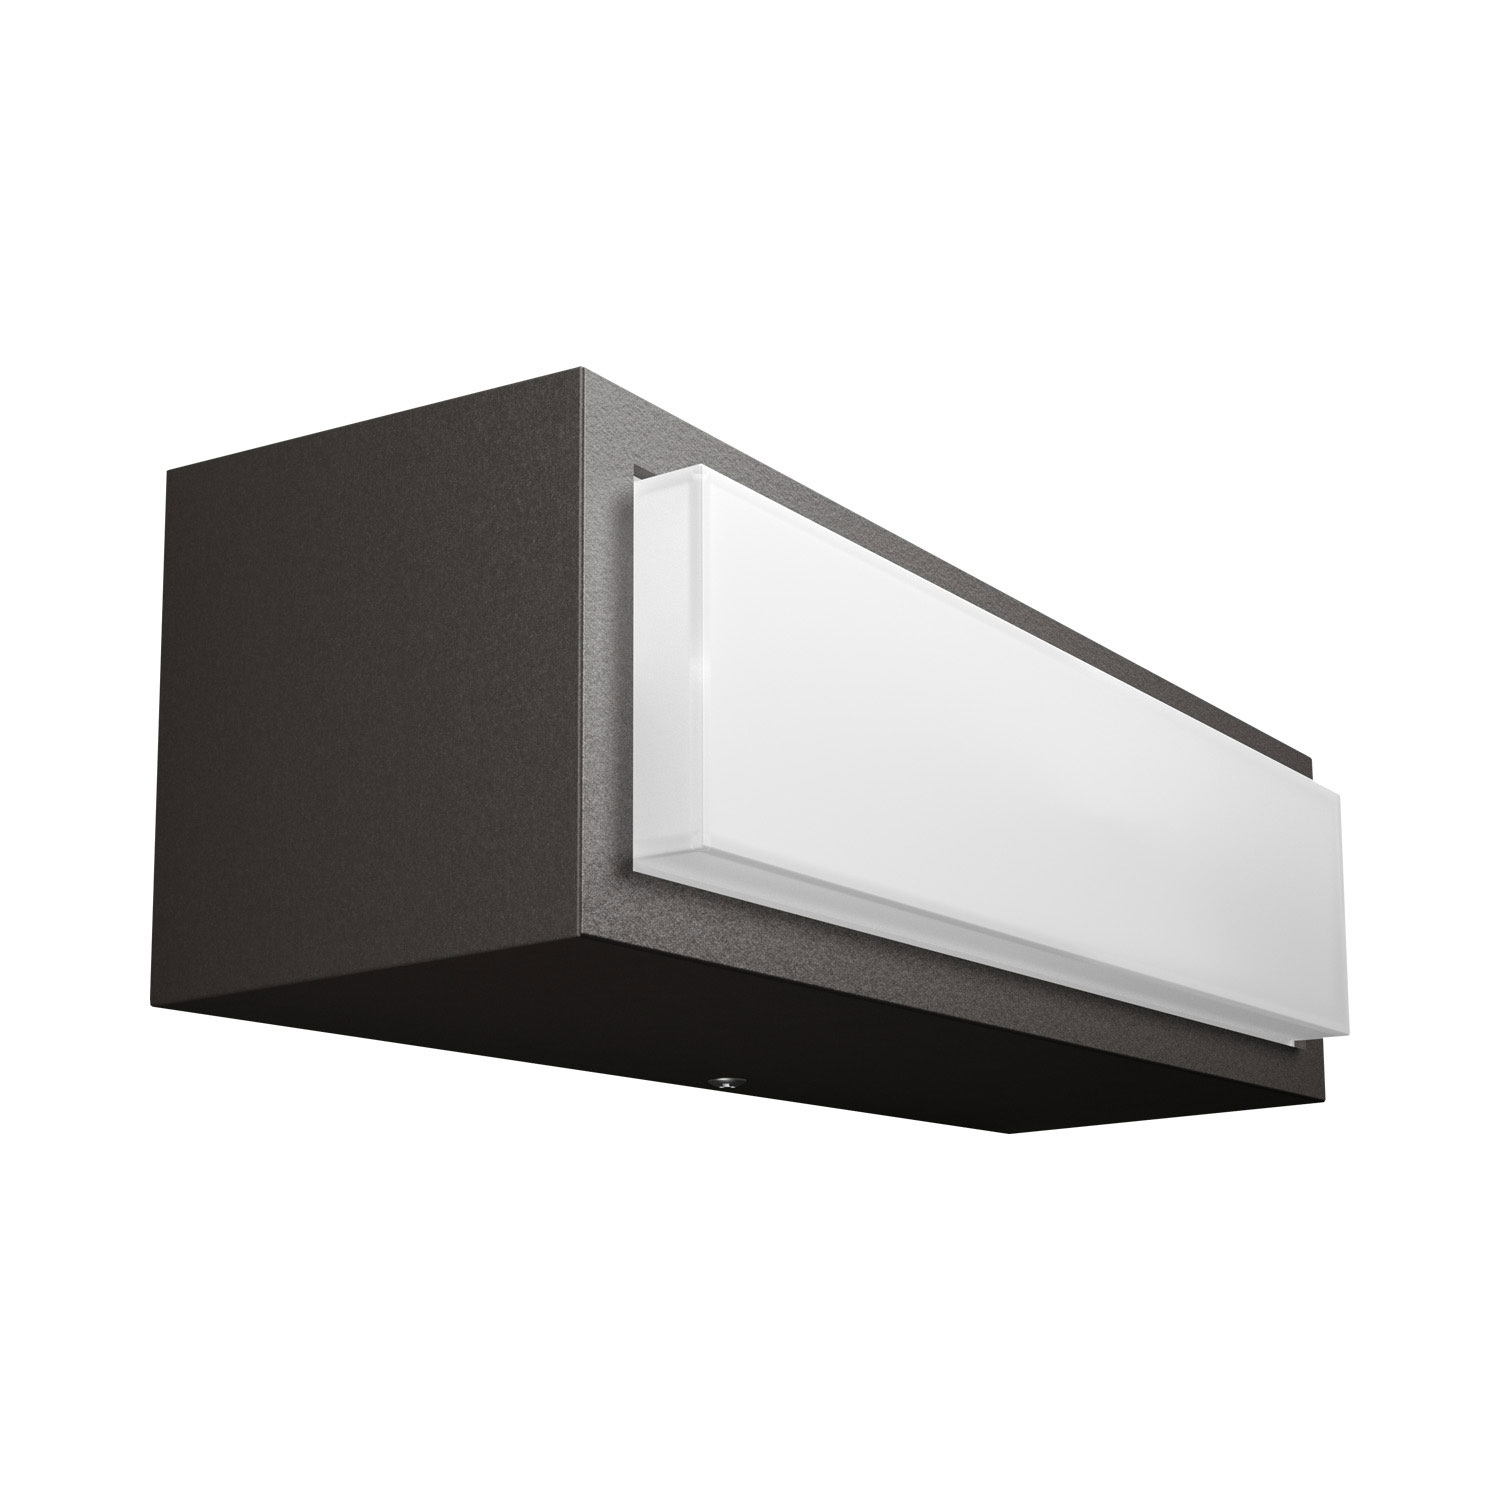 Aplique exterior led stratosphere aplique de pared for Apliques de pared exterior led